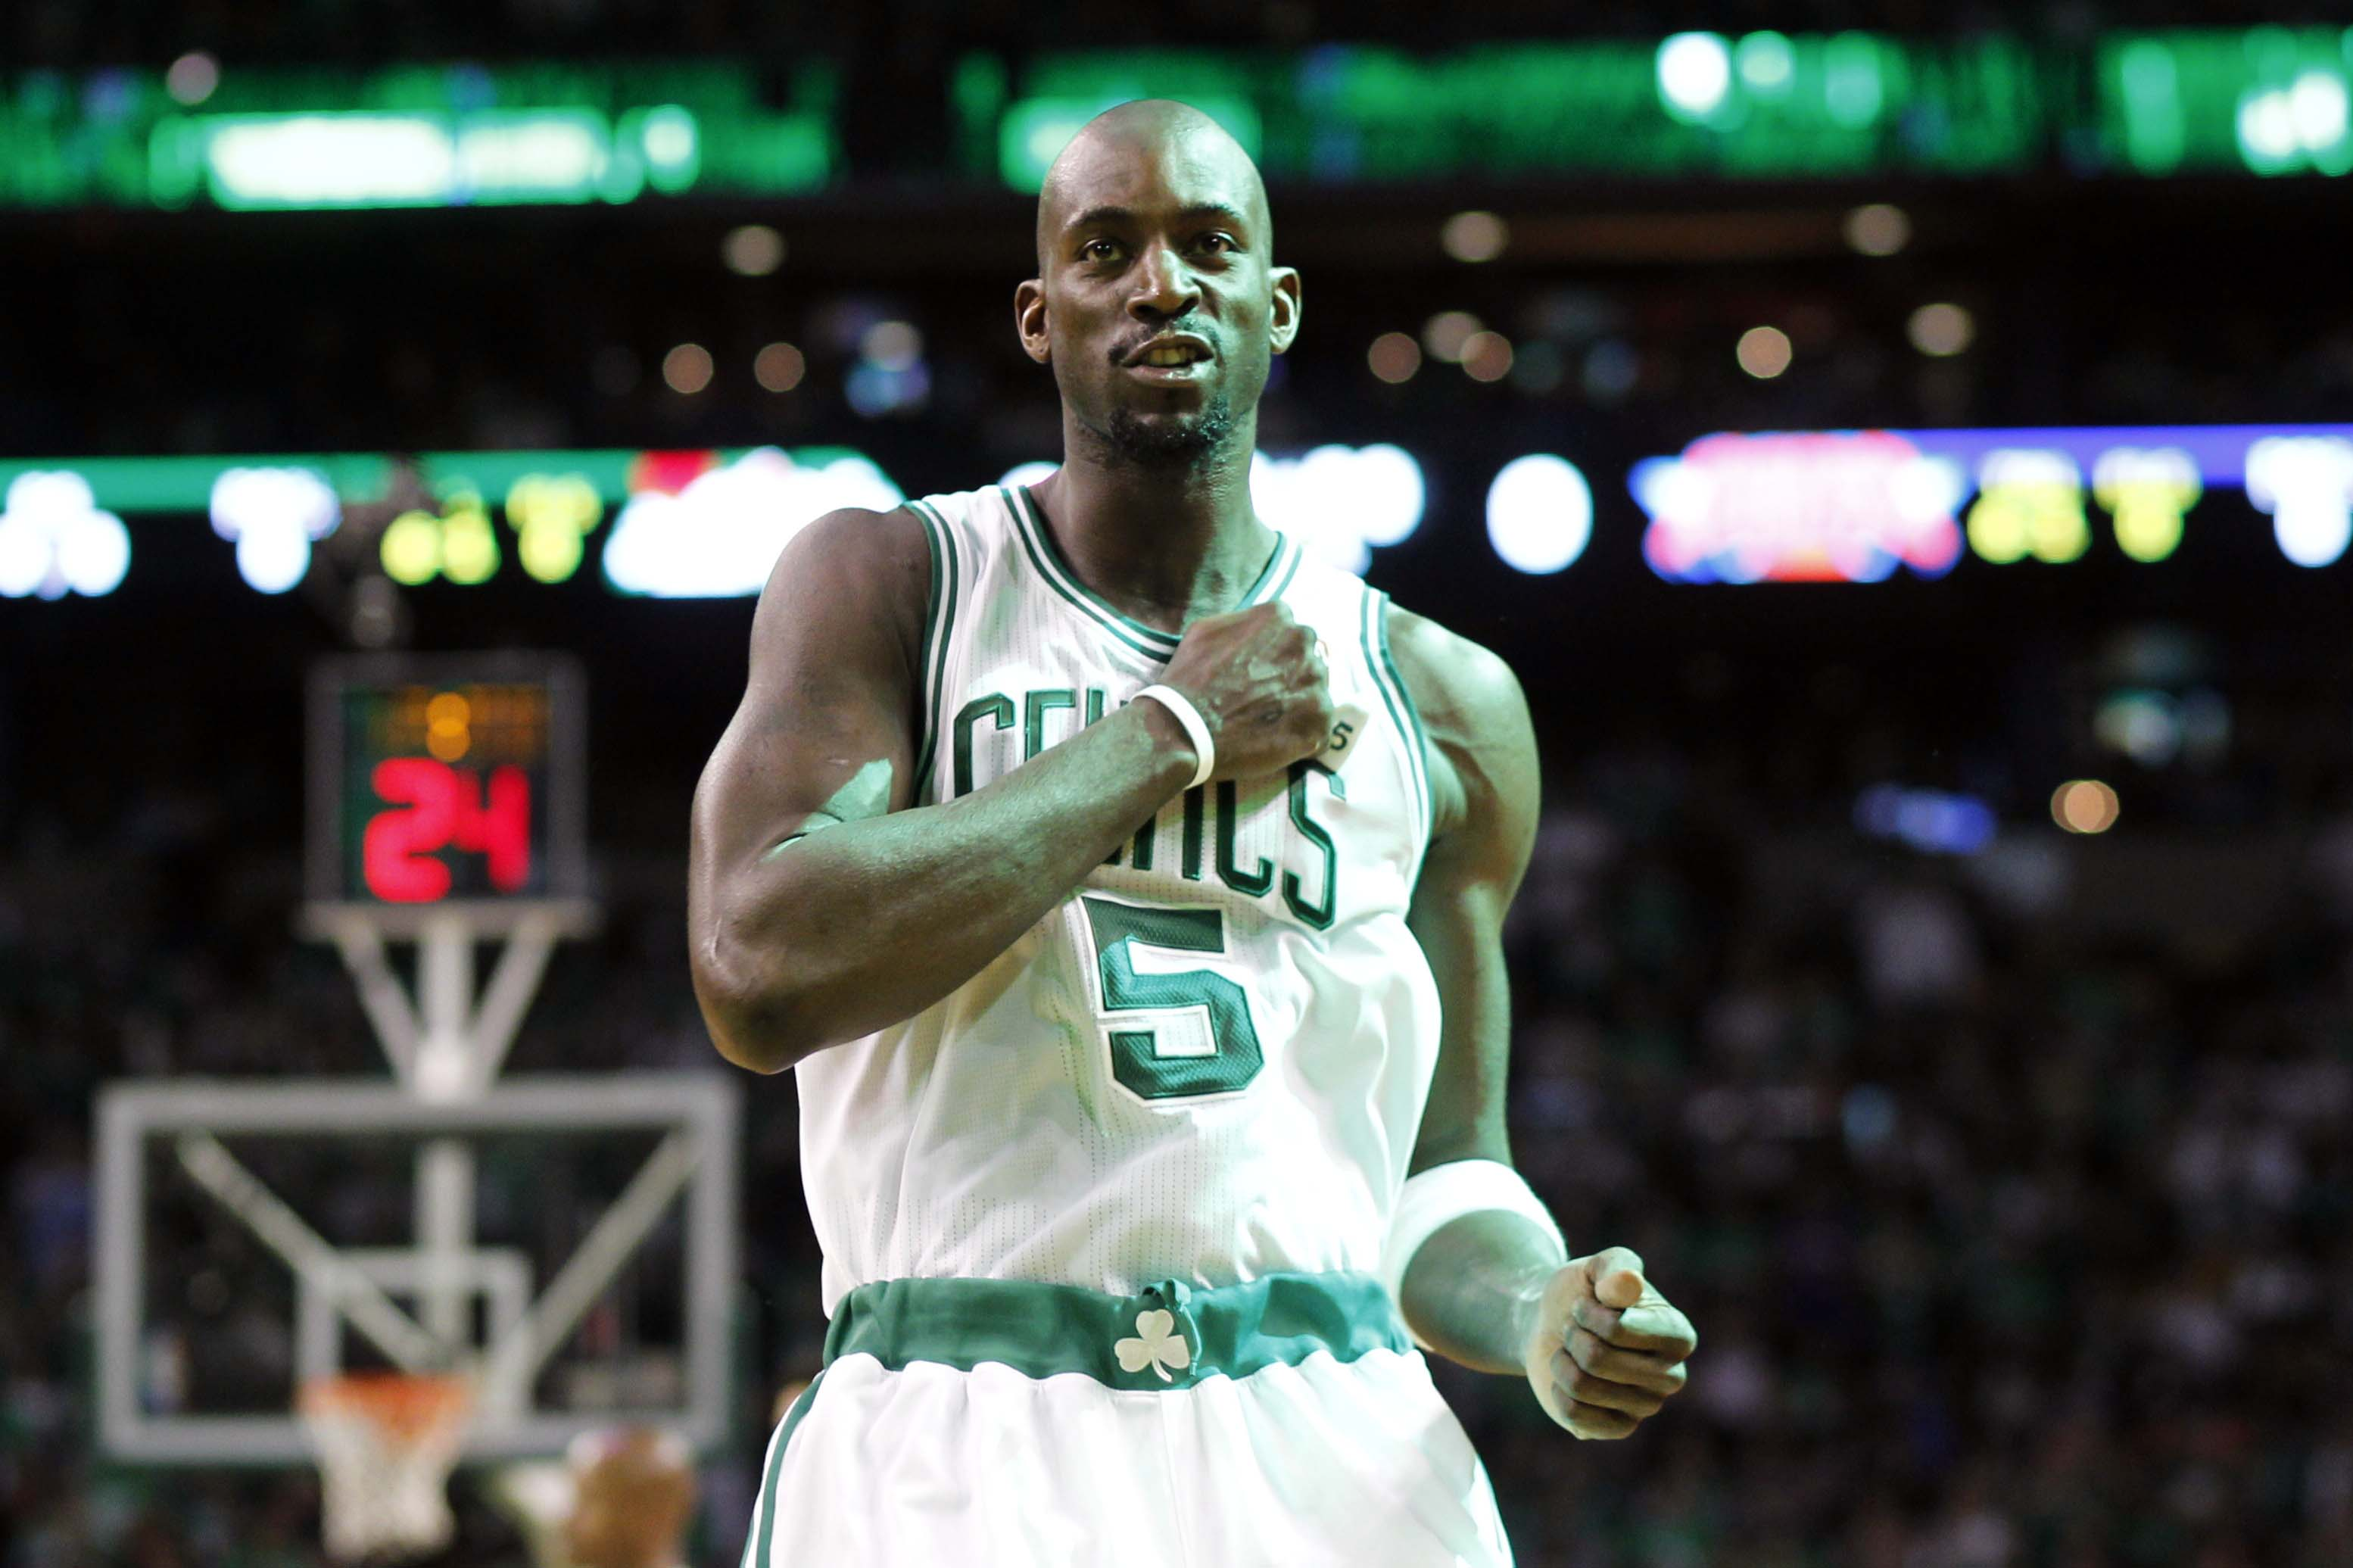 kevin garnett blames aau for killing nba 2017 images